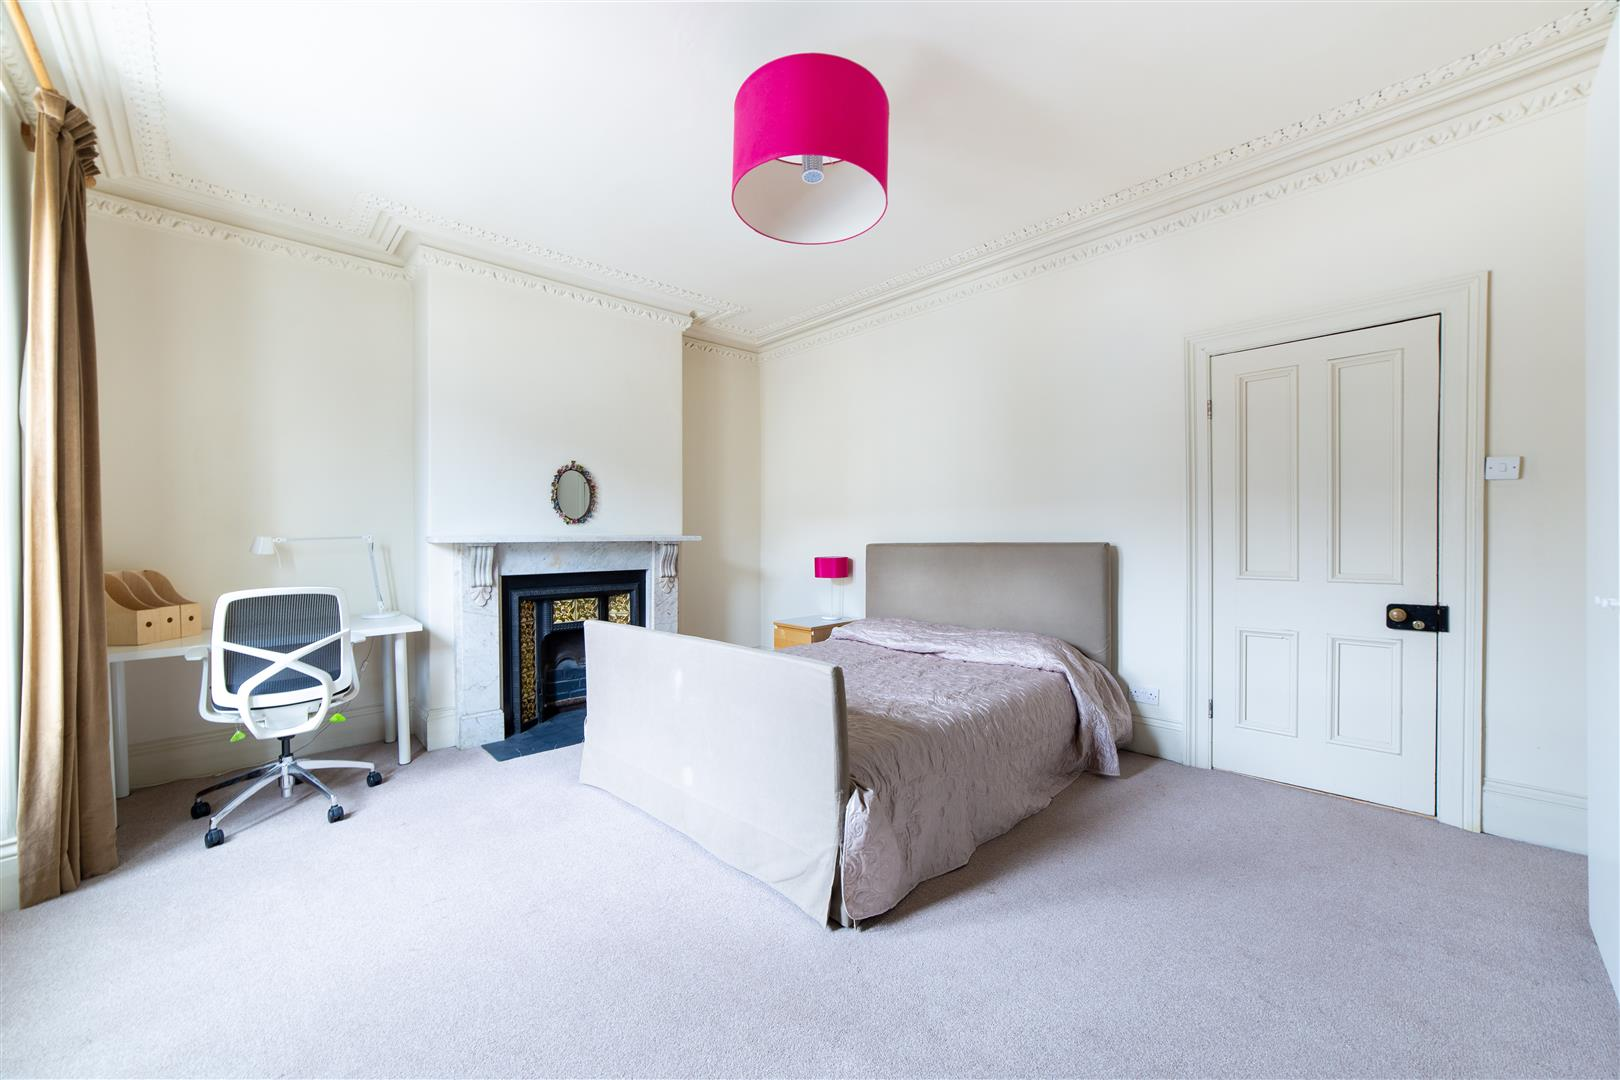 4 bed terraced house to rent in Newcastle Upon Tyne, NE6 5NU  - Property Image 6